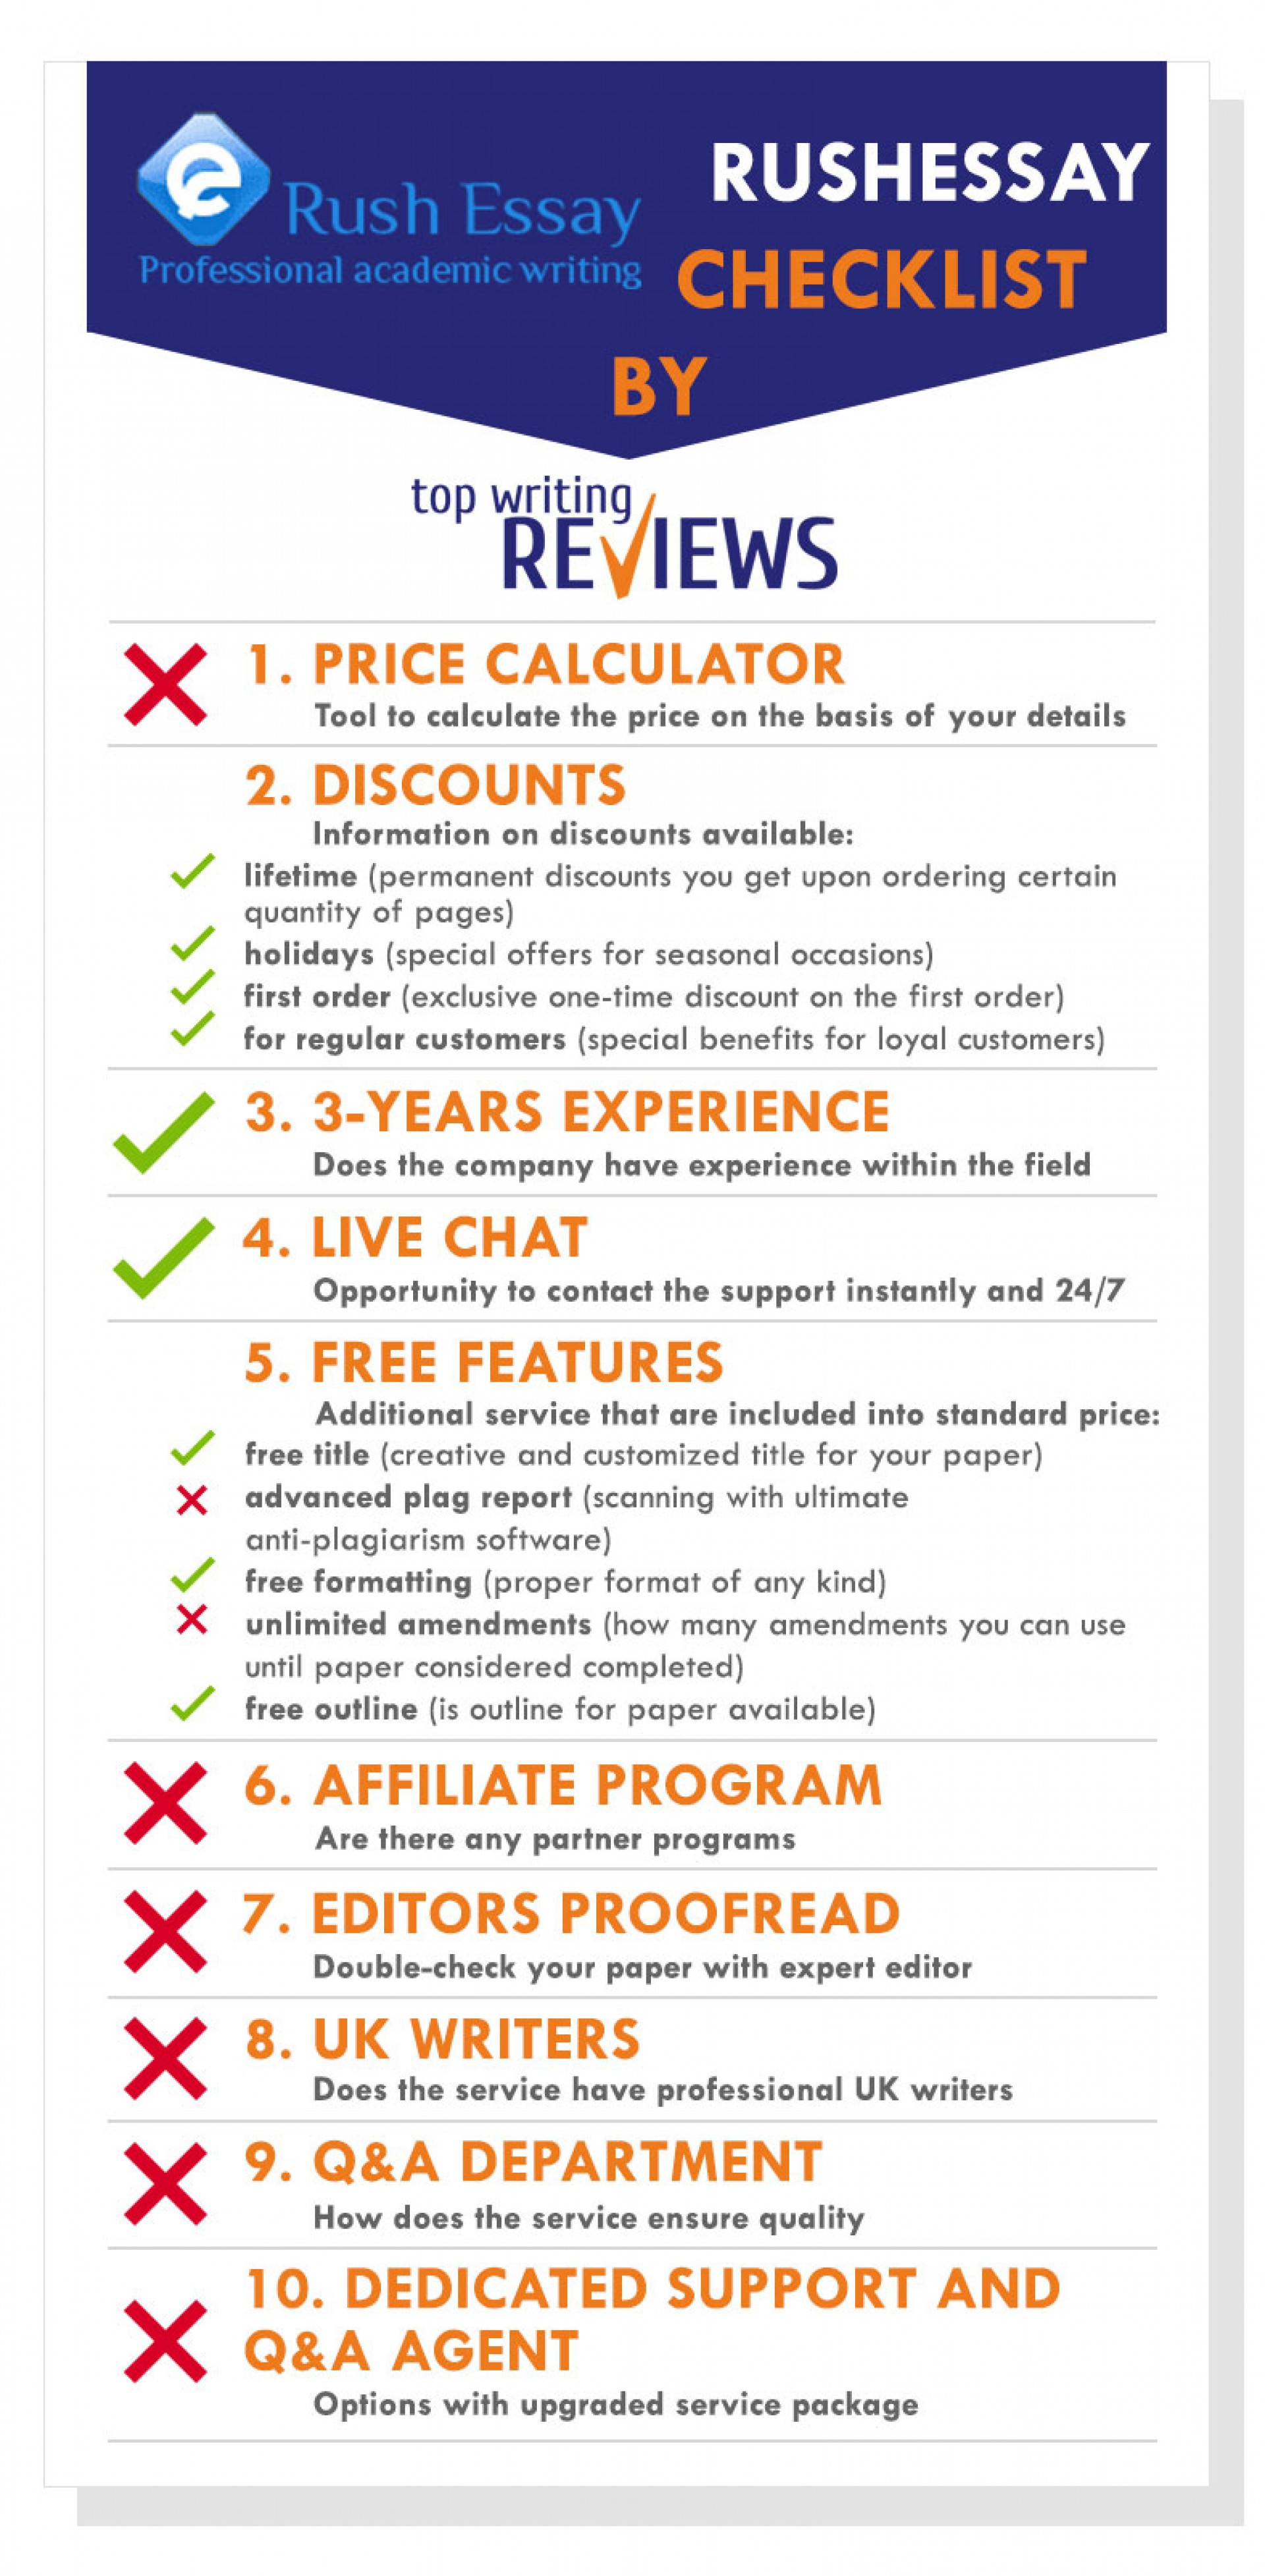 004 Top Essay Writing Reviews Checklist Review Of Rushessay By Topwritingreviews Unique 1920